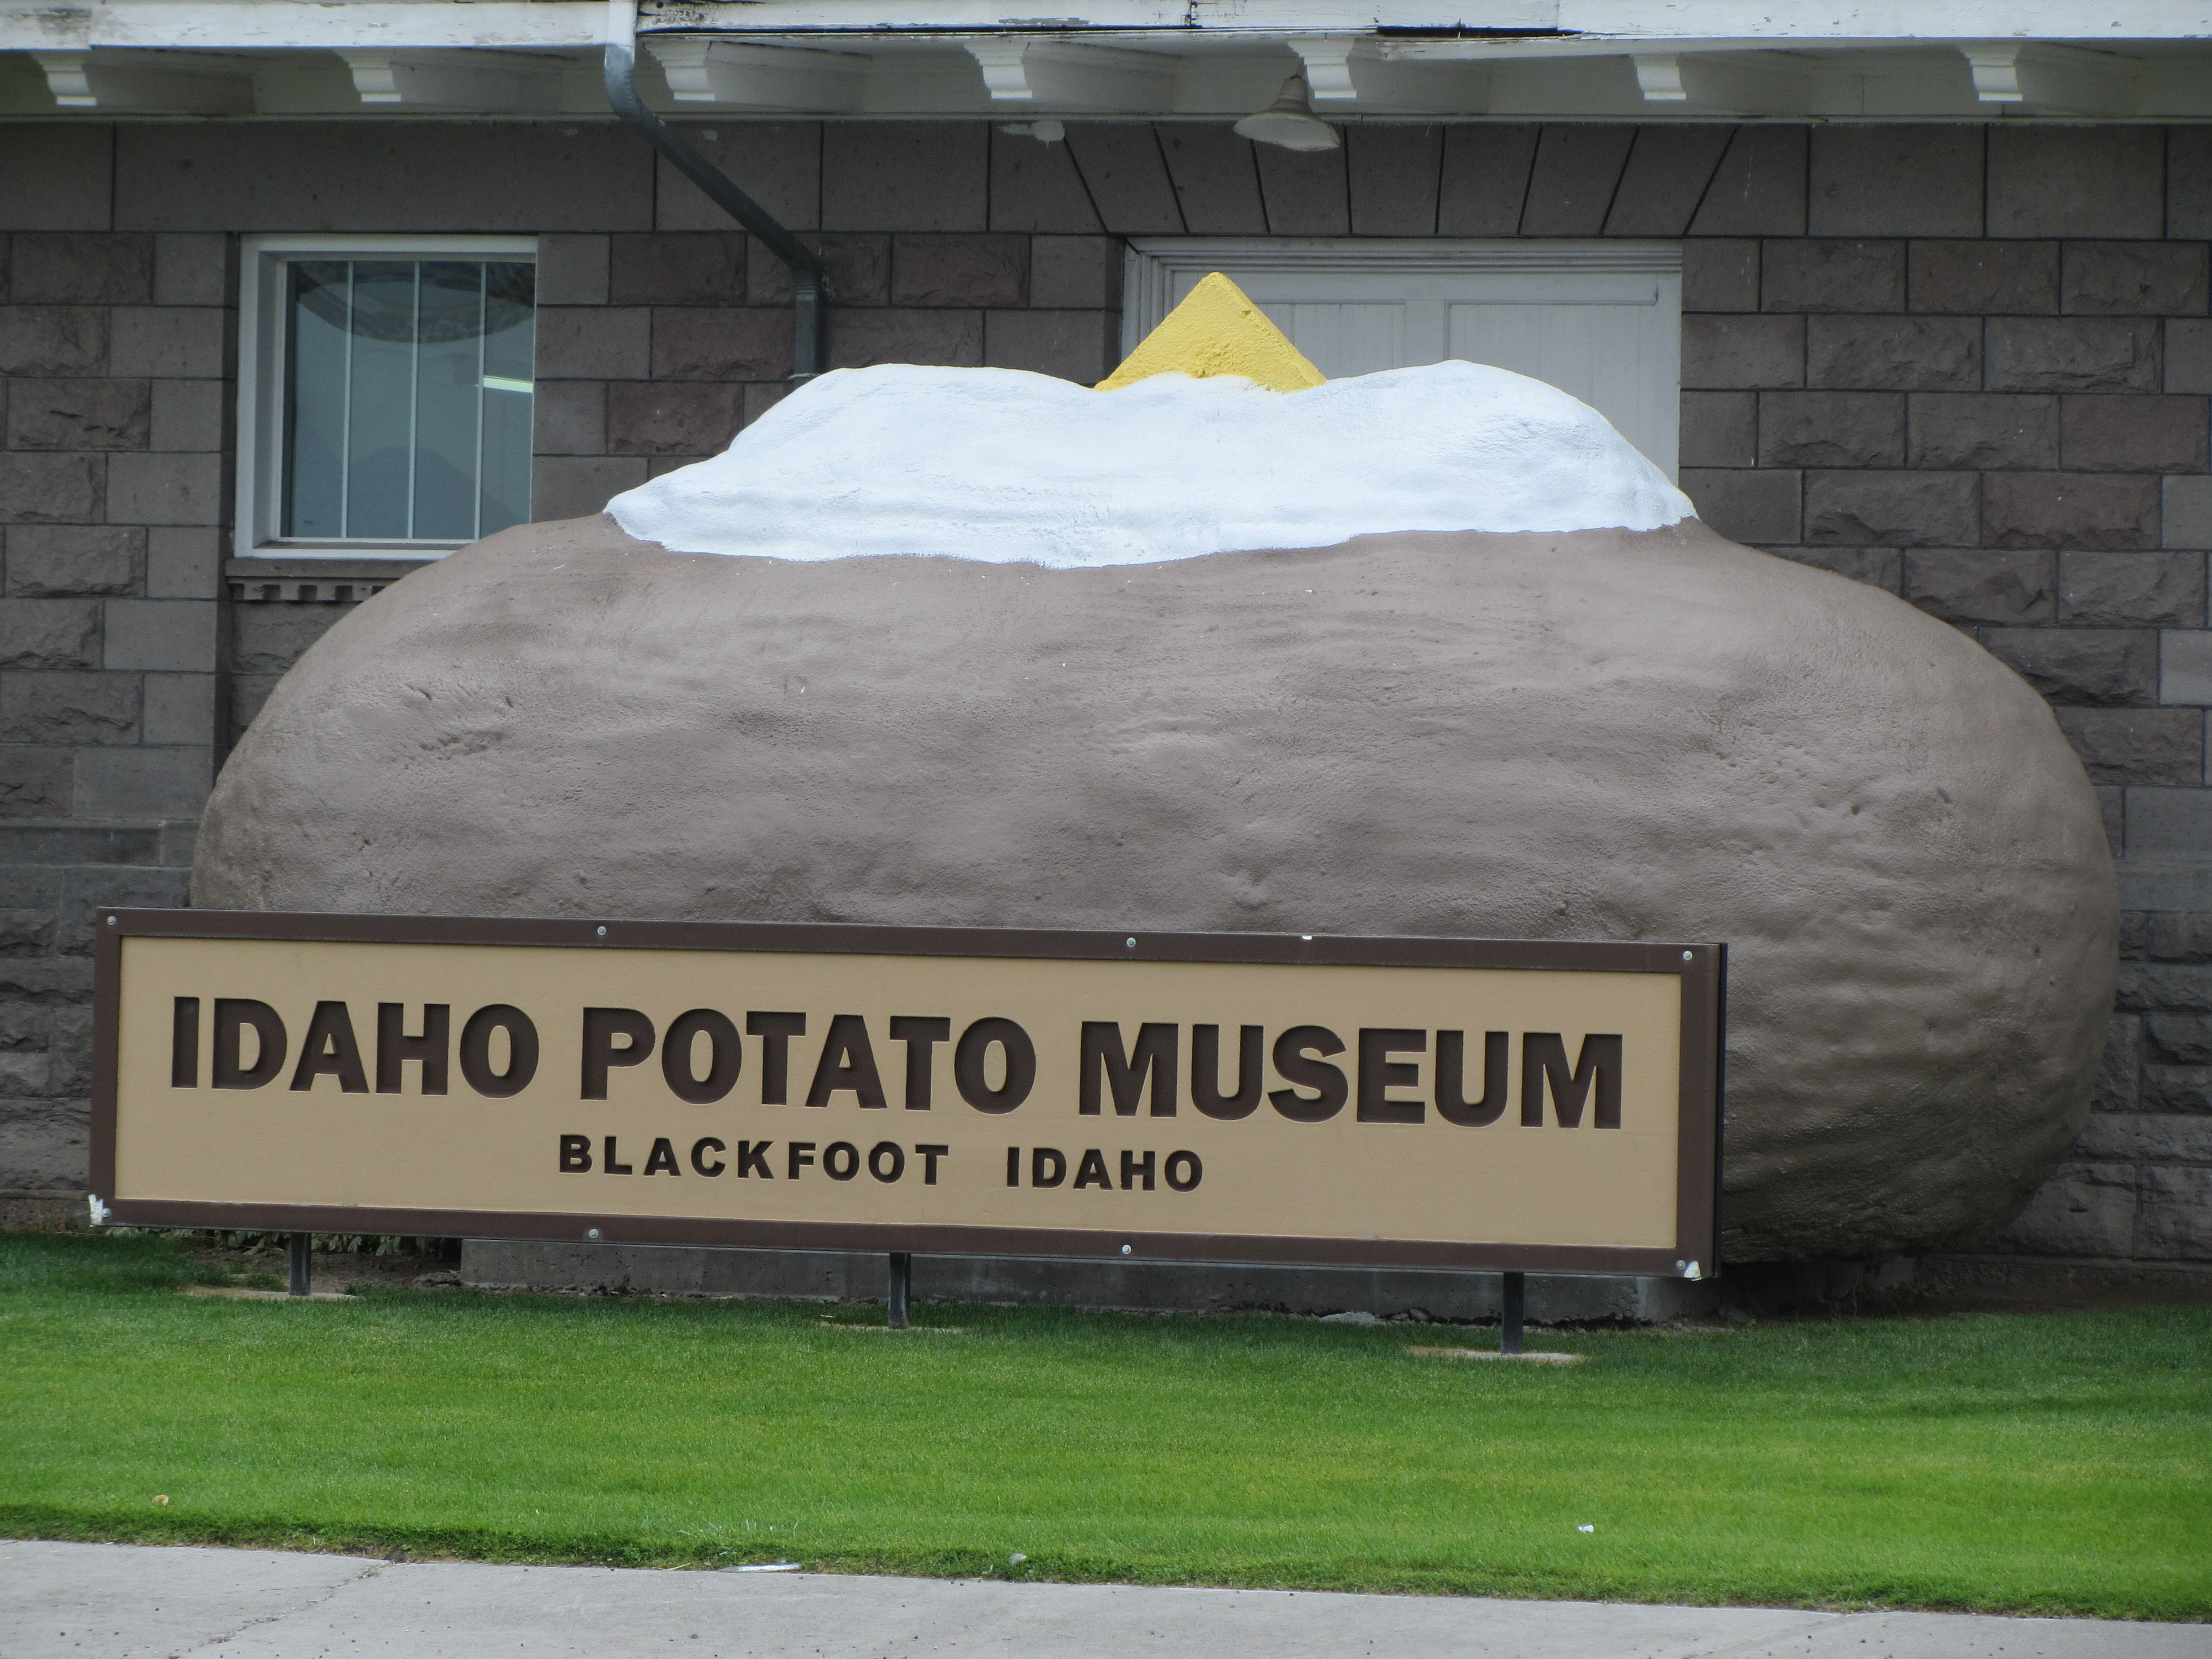 The large potato that denotes the name of the Idaho Potato Museum, located in Blackfoot, Idaho.